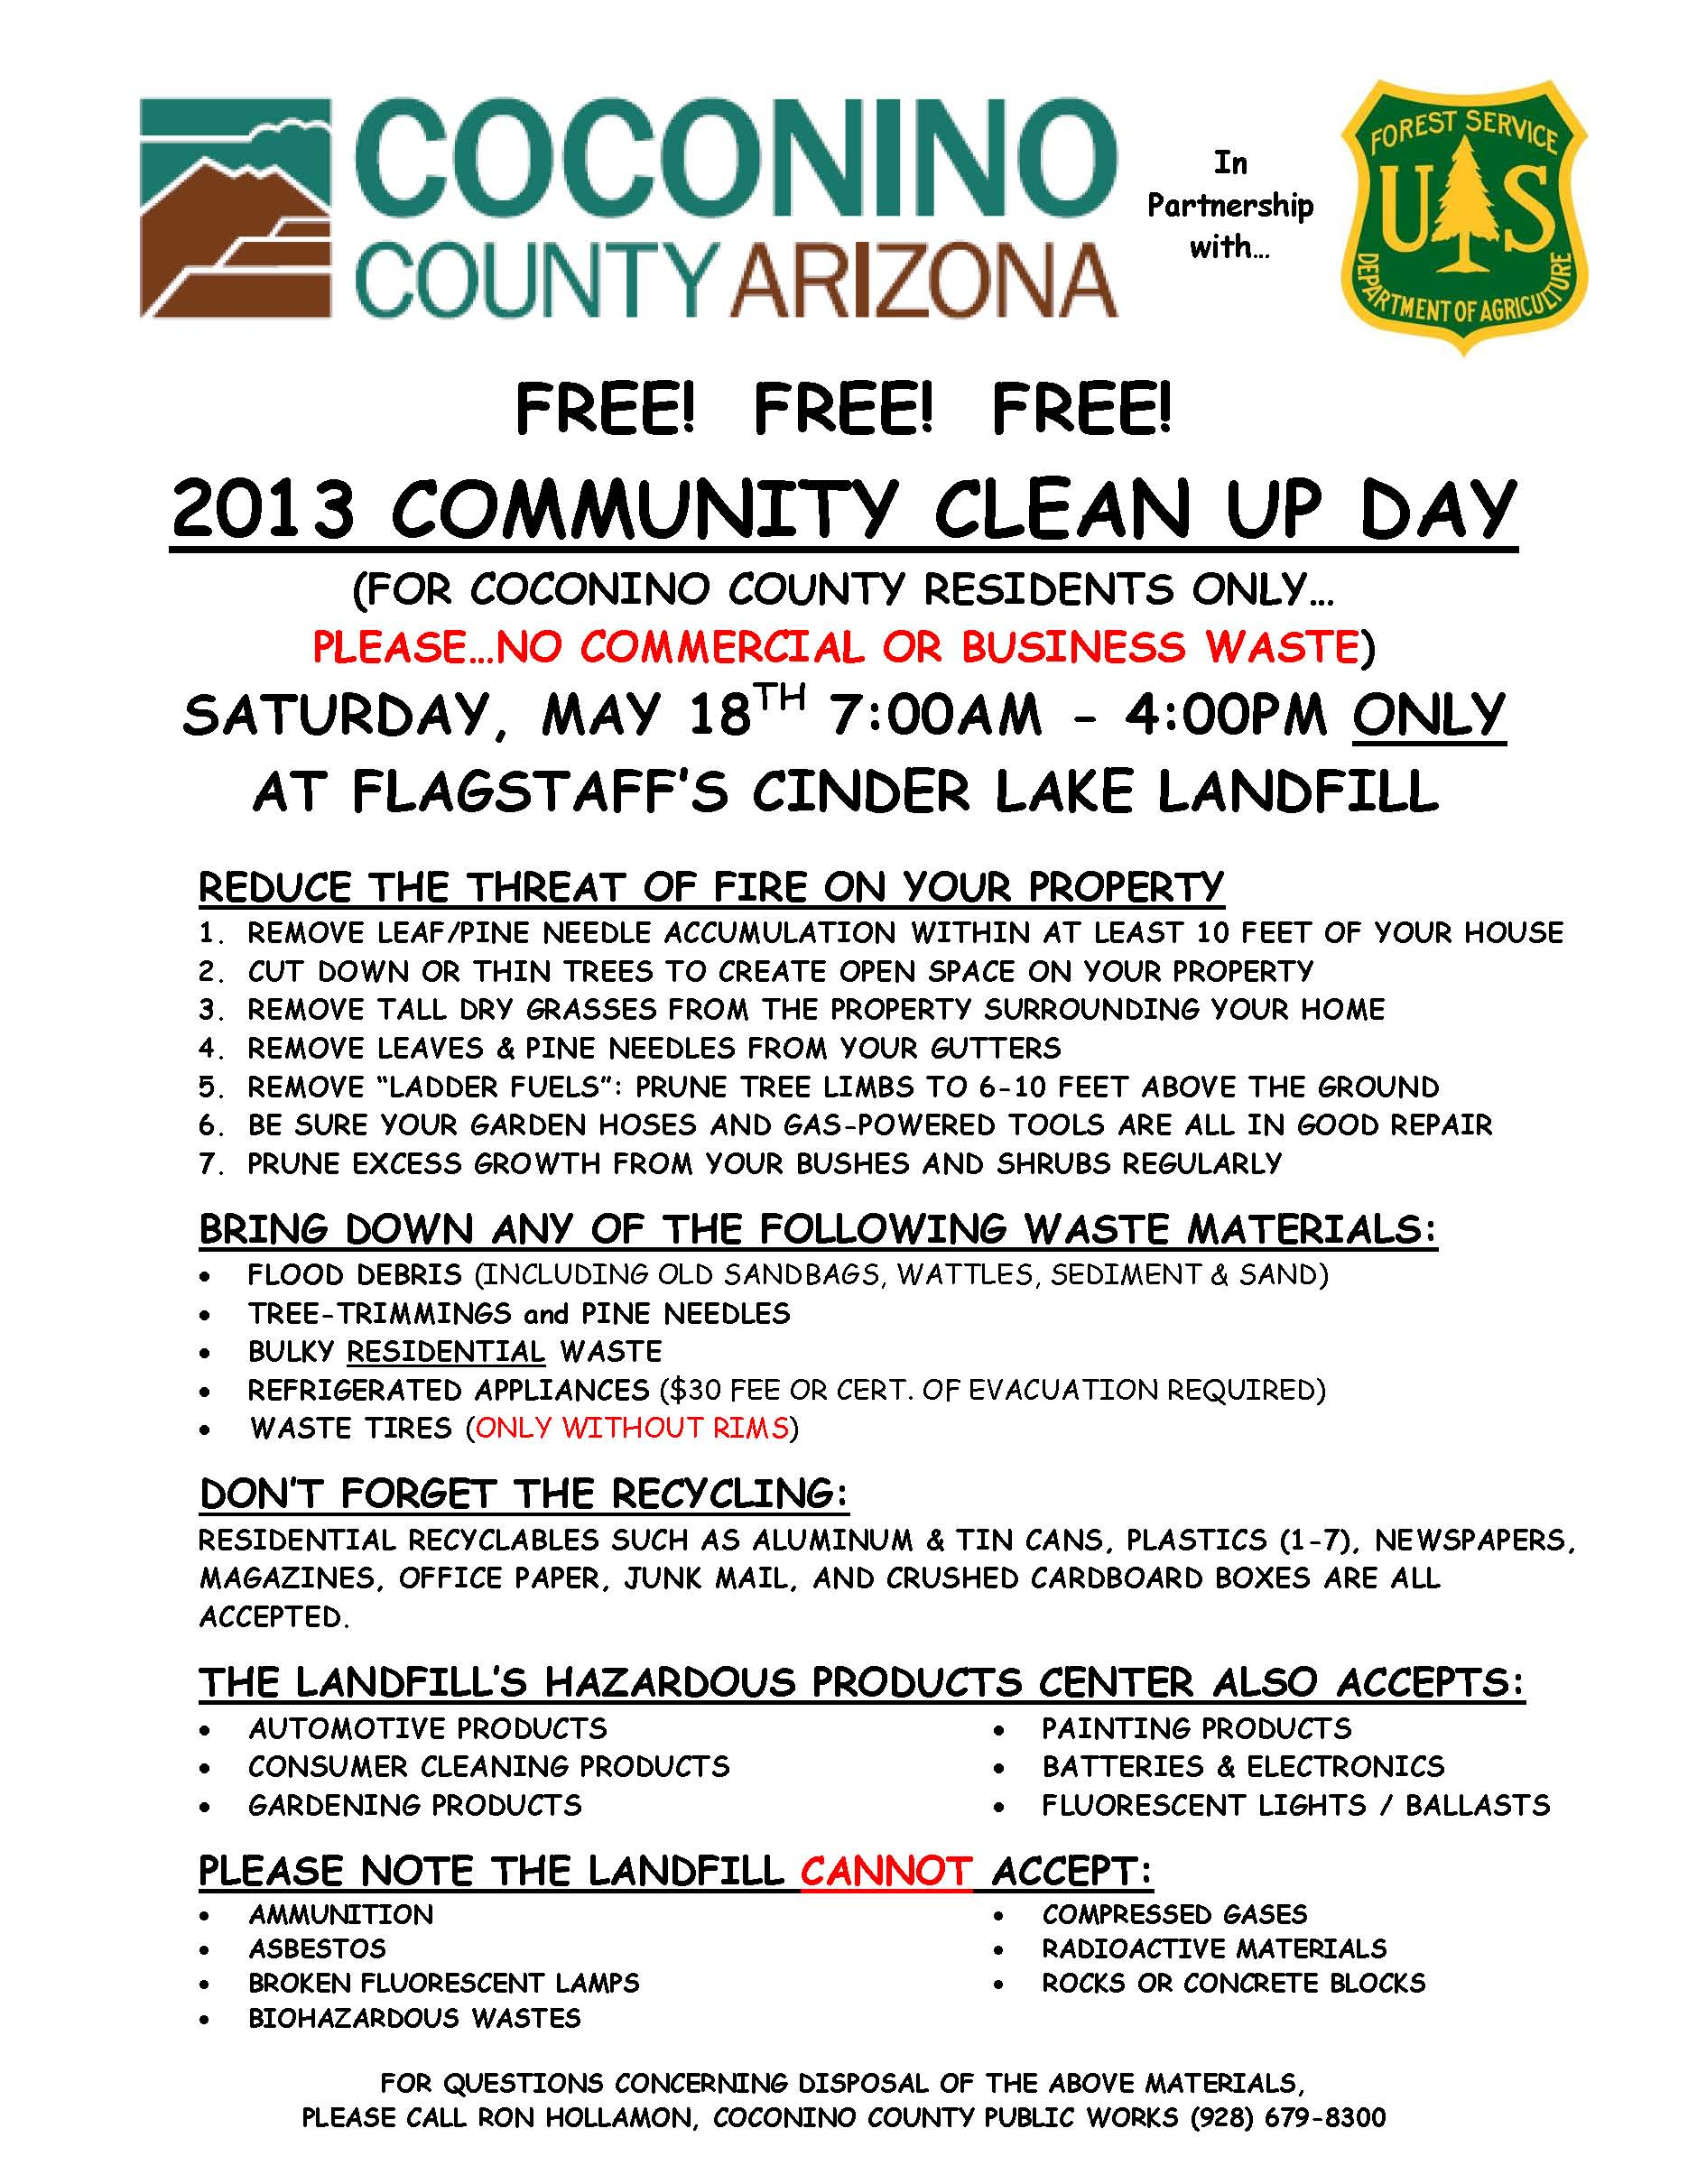 2013 Community Clean-Up Day for County Residents